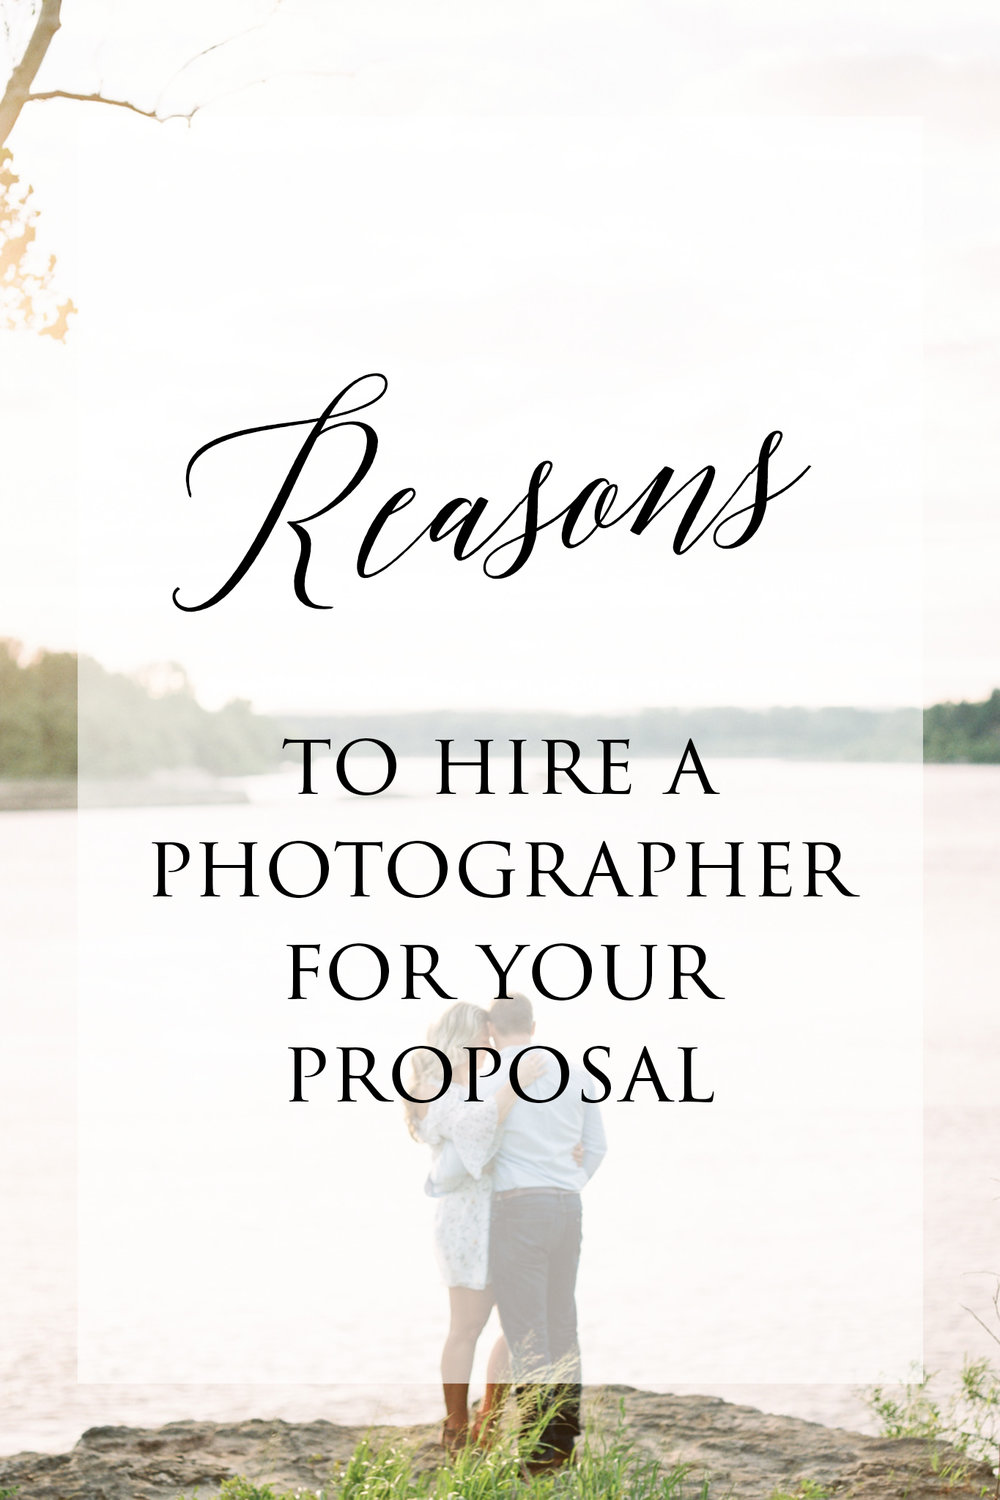 5 Reasons to Hire a Photographer for Your Proposal